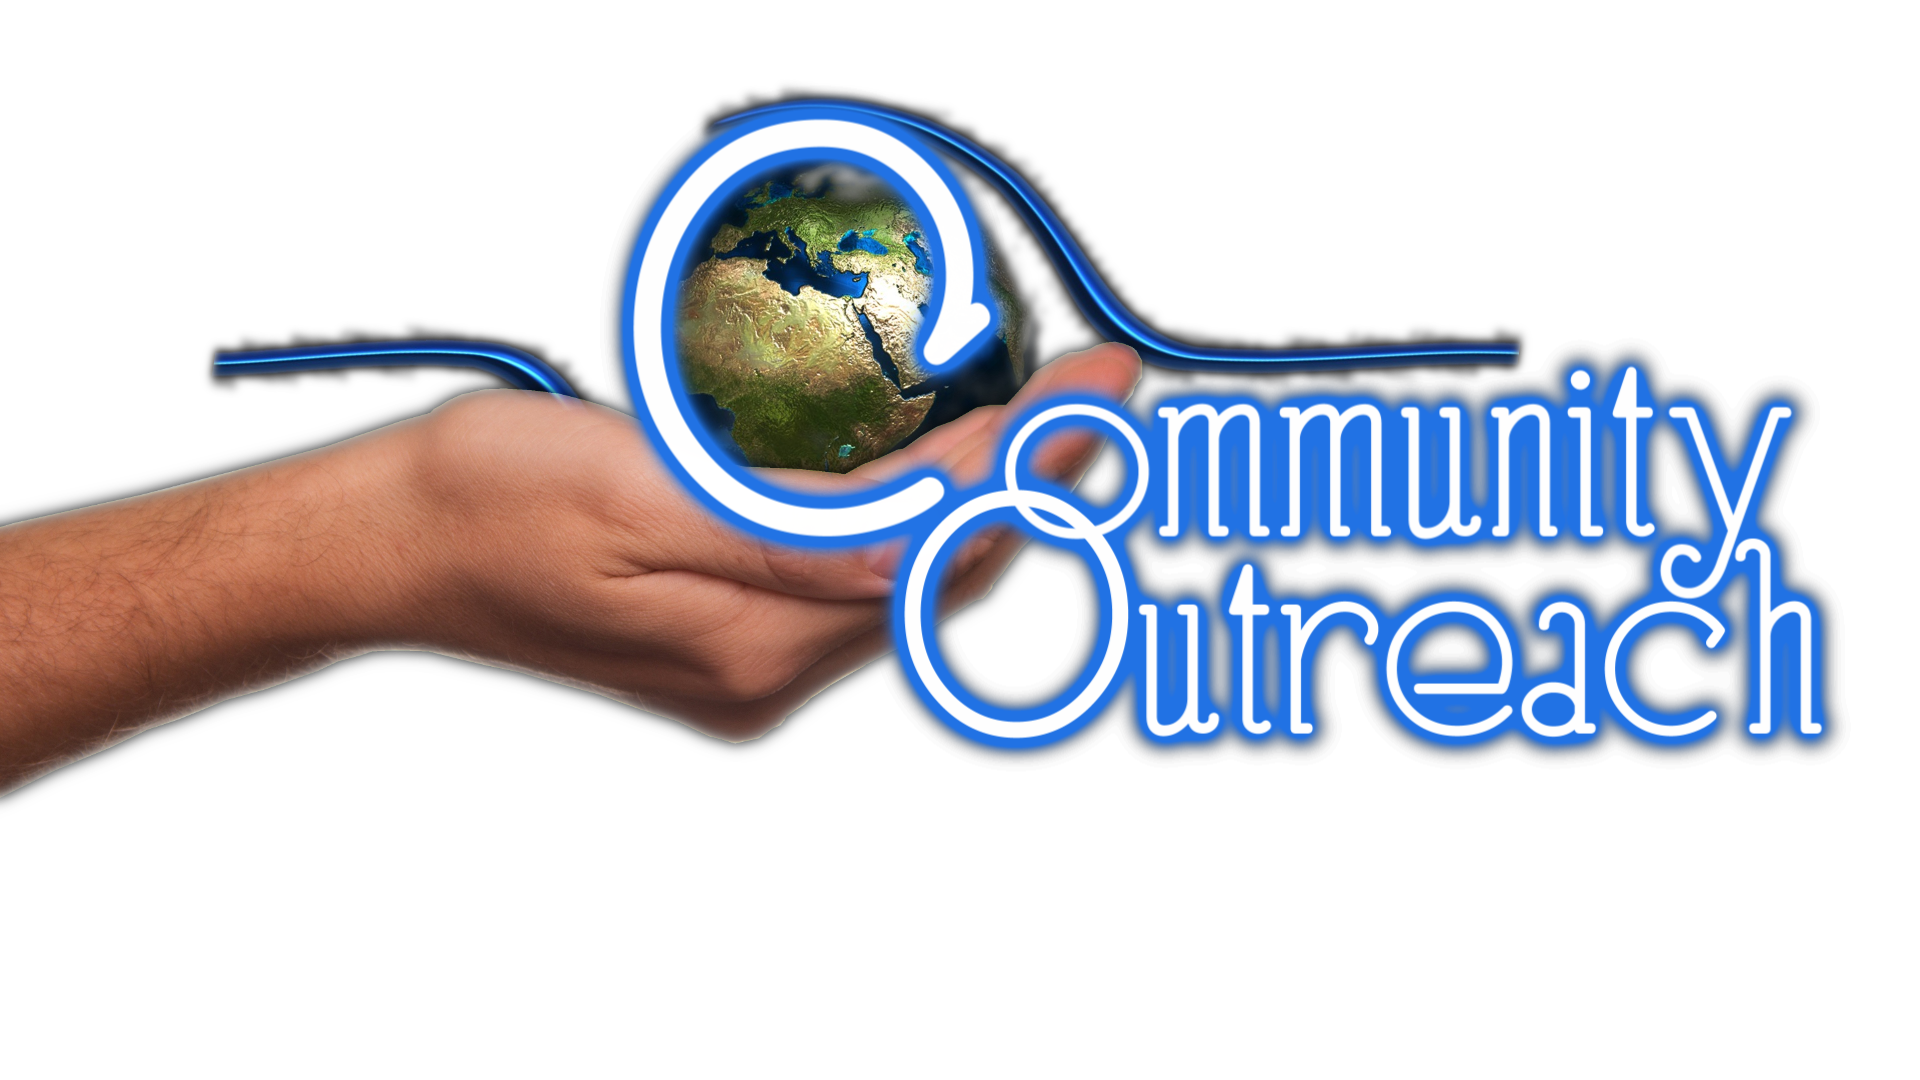 Community outreach_000000